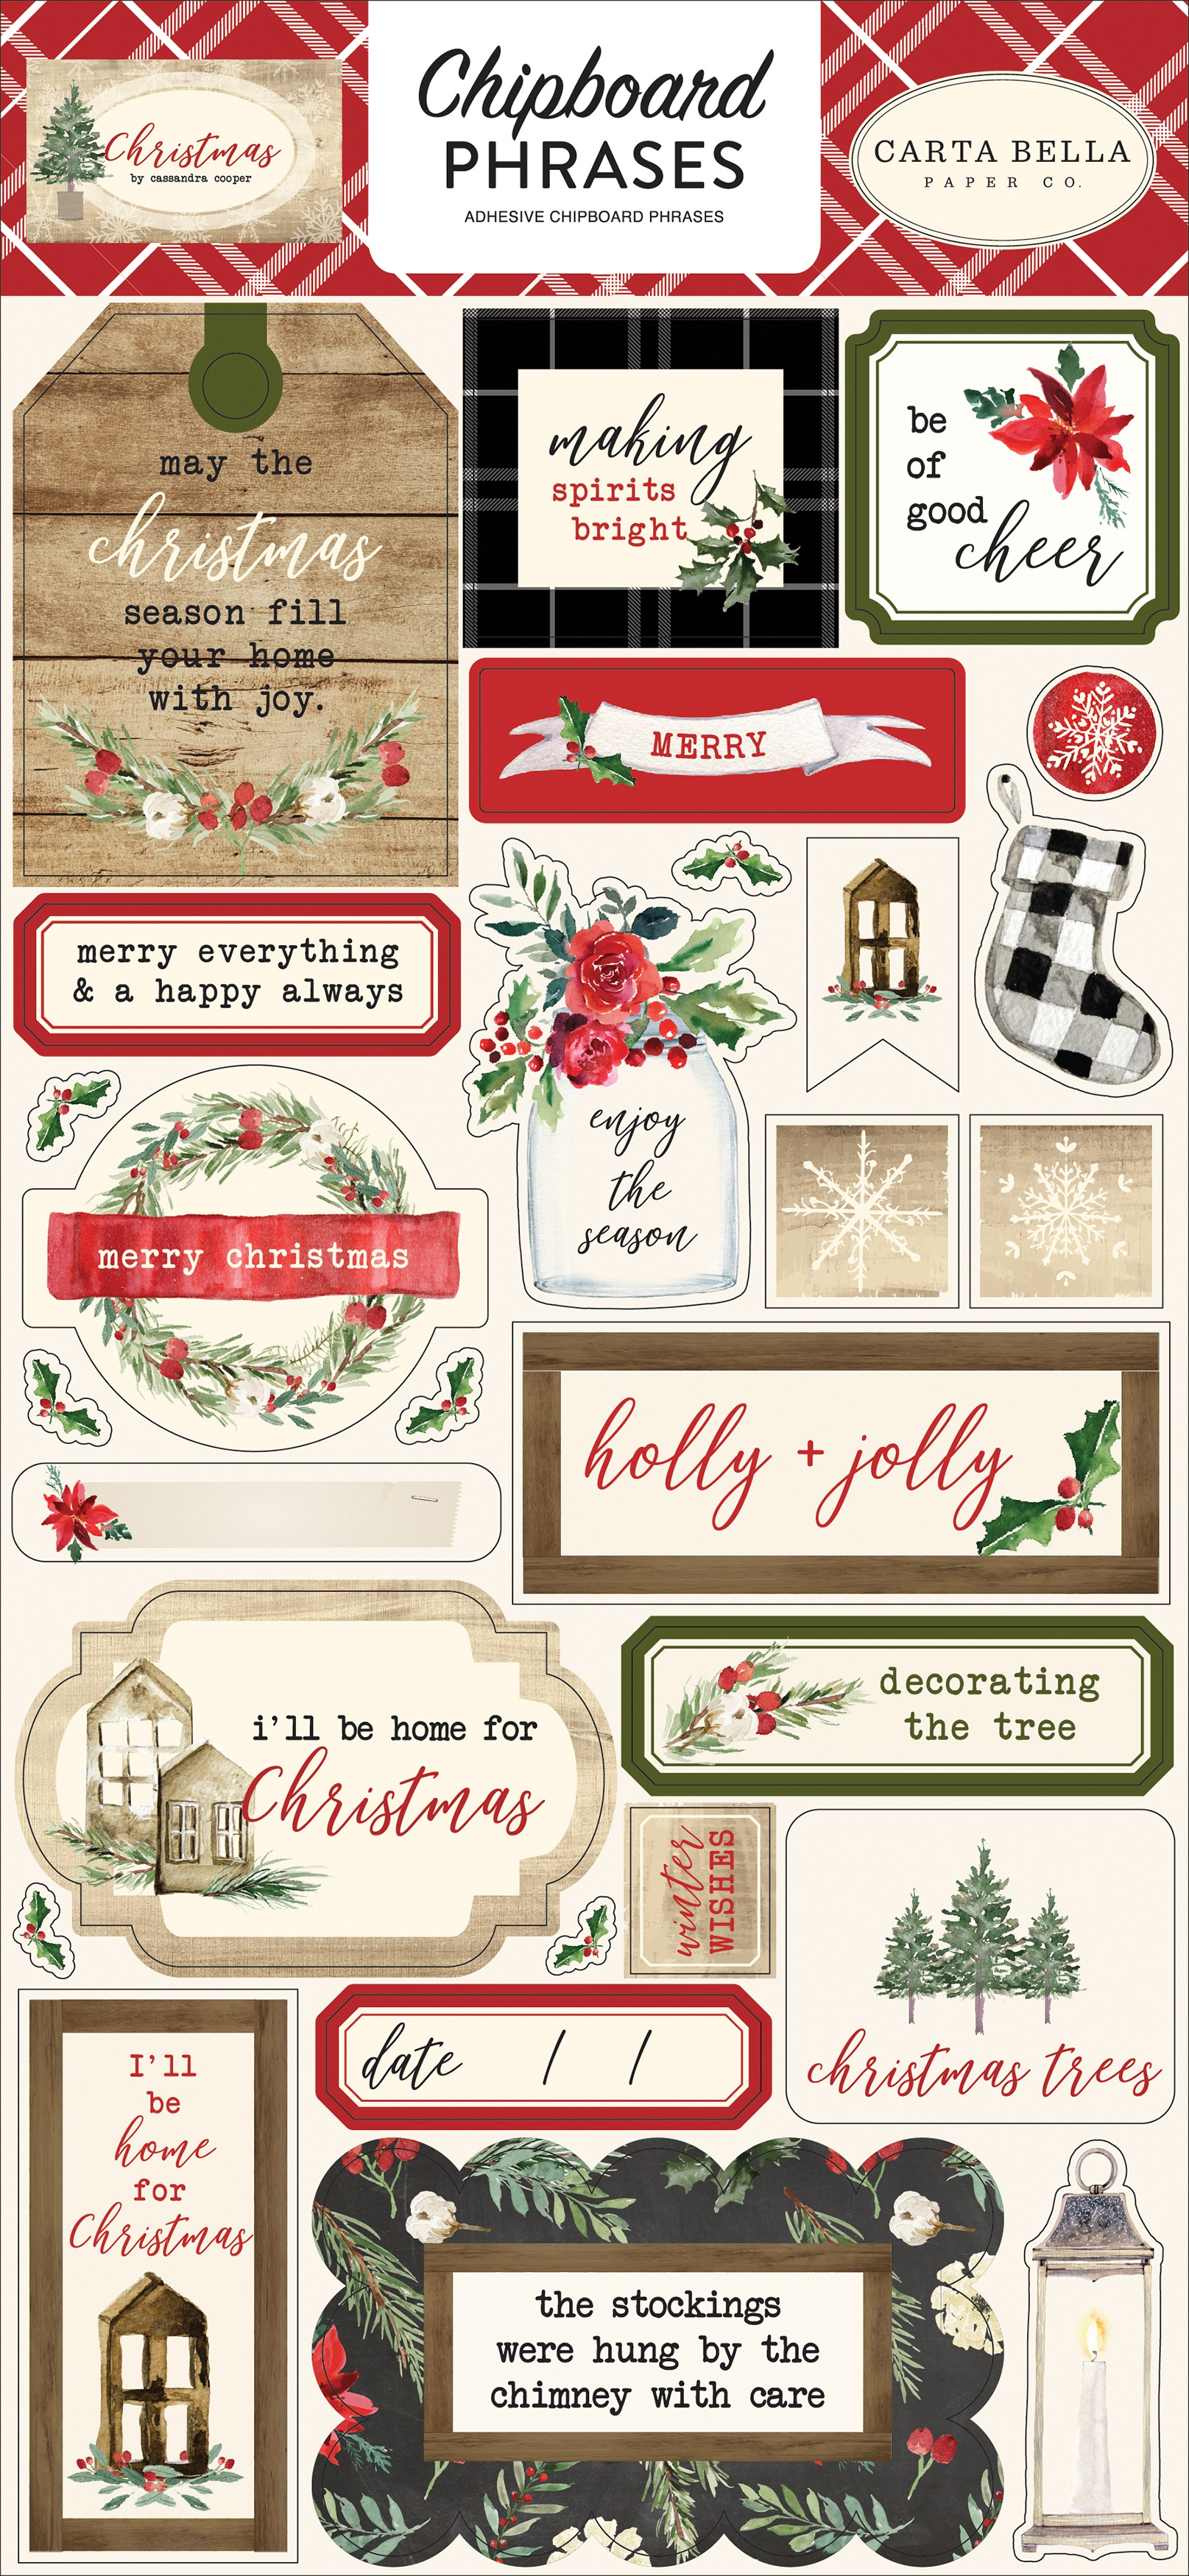 Carta Bella Chipboard Phrases Christmas by Cassandra Cooper